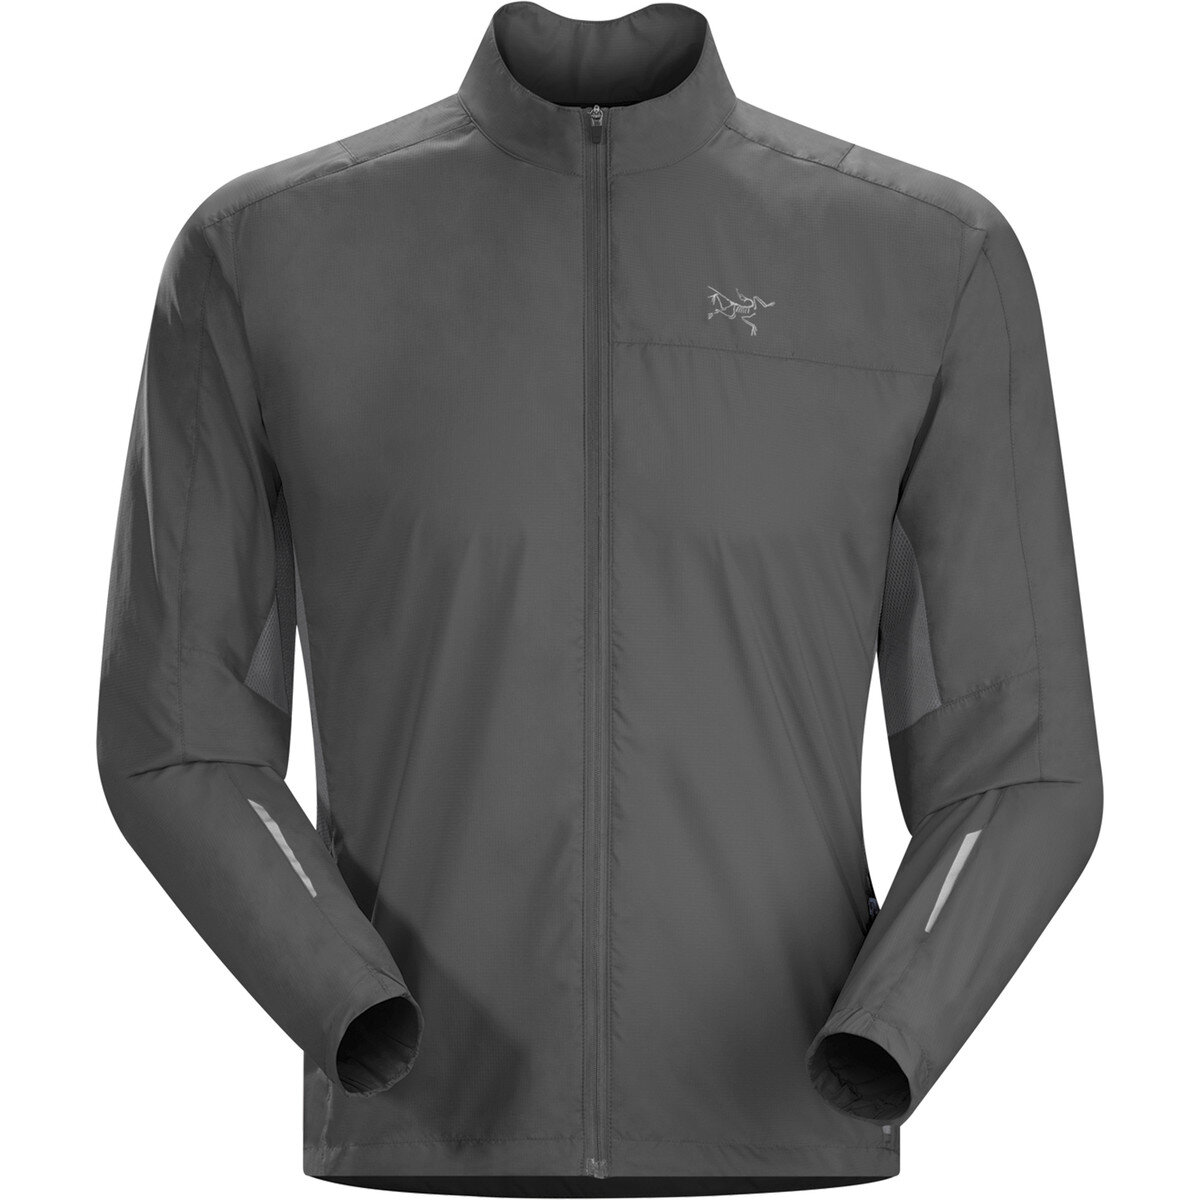 The Arc'teryx Incendo jacket is one of our favourites. It's available from Backcountry.com and many other retailers.